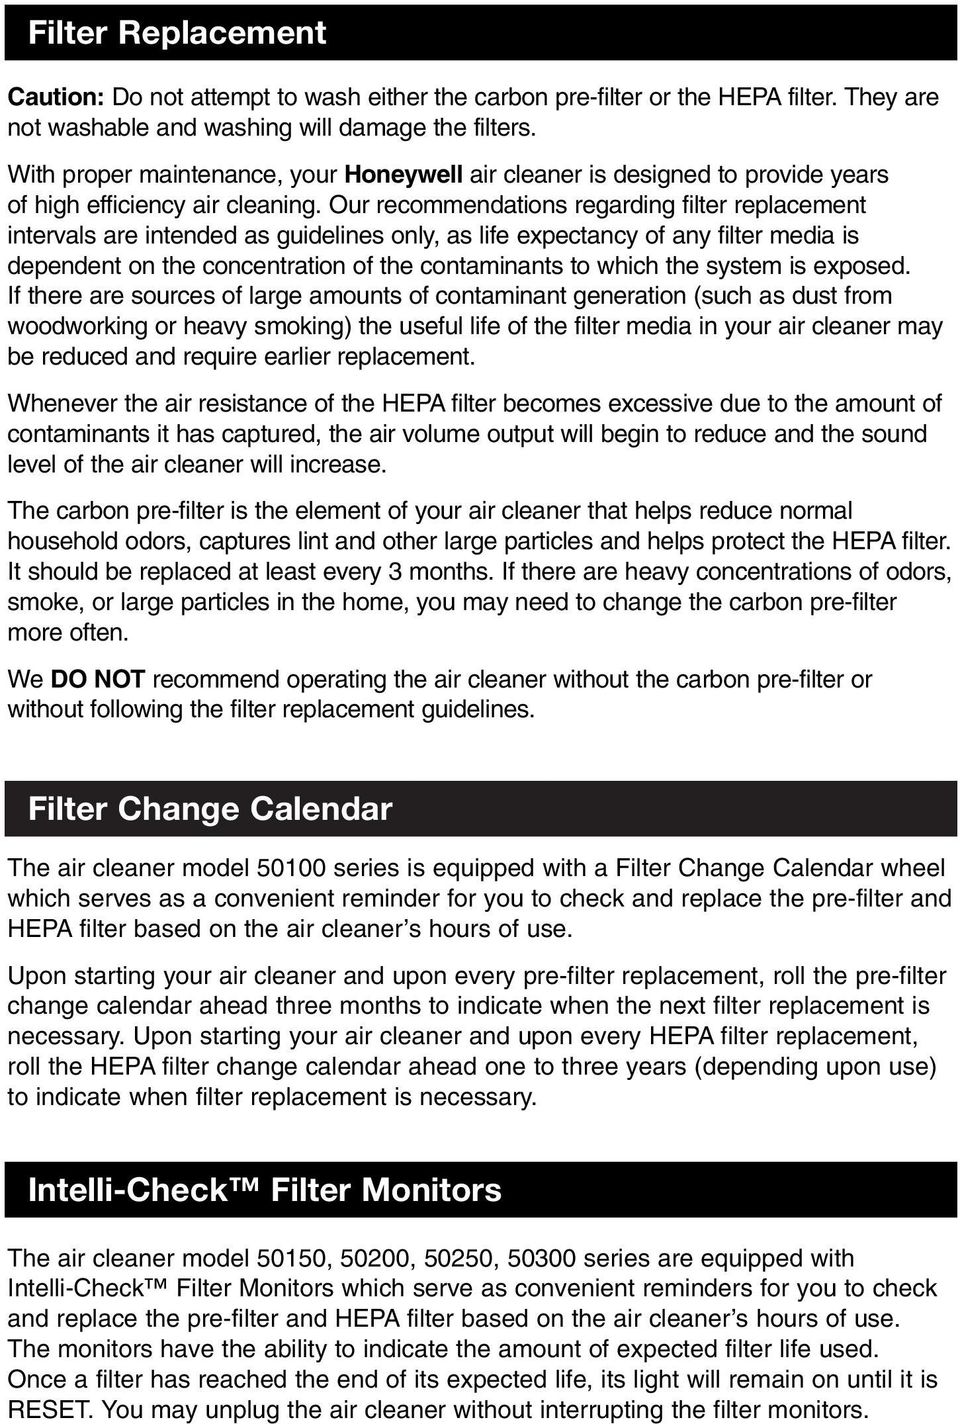 Our recommendations regarding filter replacement intervals are intended as guidelines only, as life expectancy of any filter media is dependent on the concentration of the contaminants to which the